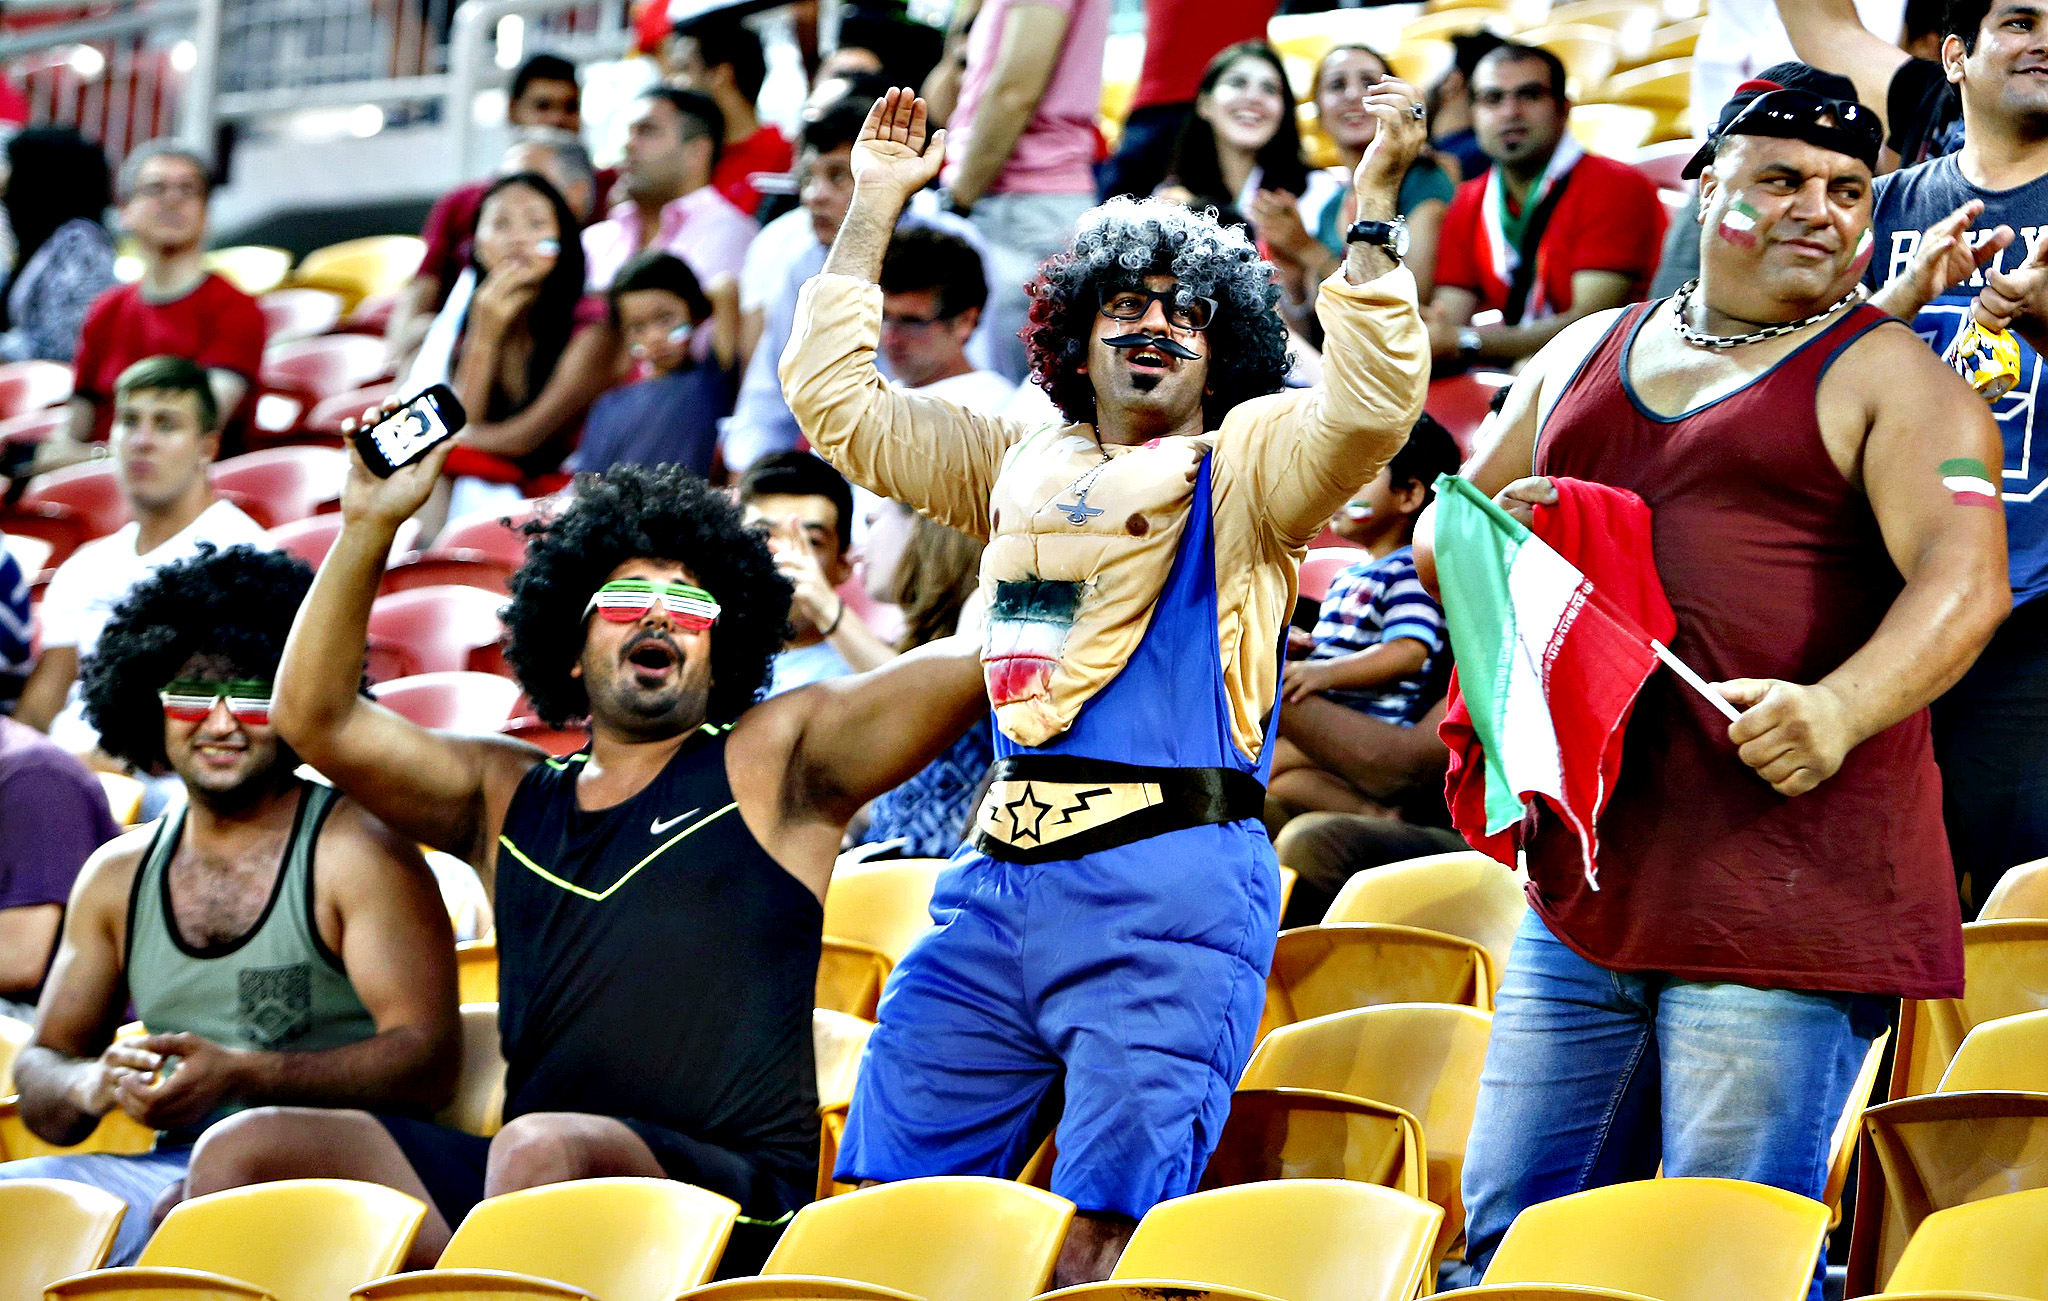 Iran fans cheer before the start of their Asian Cup Group C soccer match against UAE at the Brisbane Stadium in Brisbane January 19, 2015.